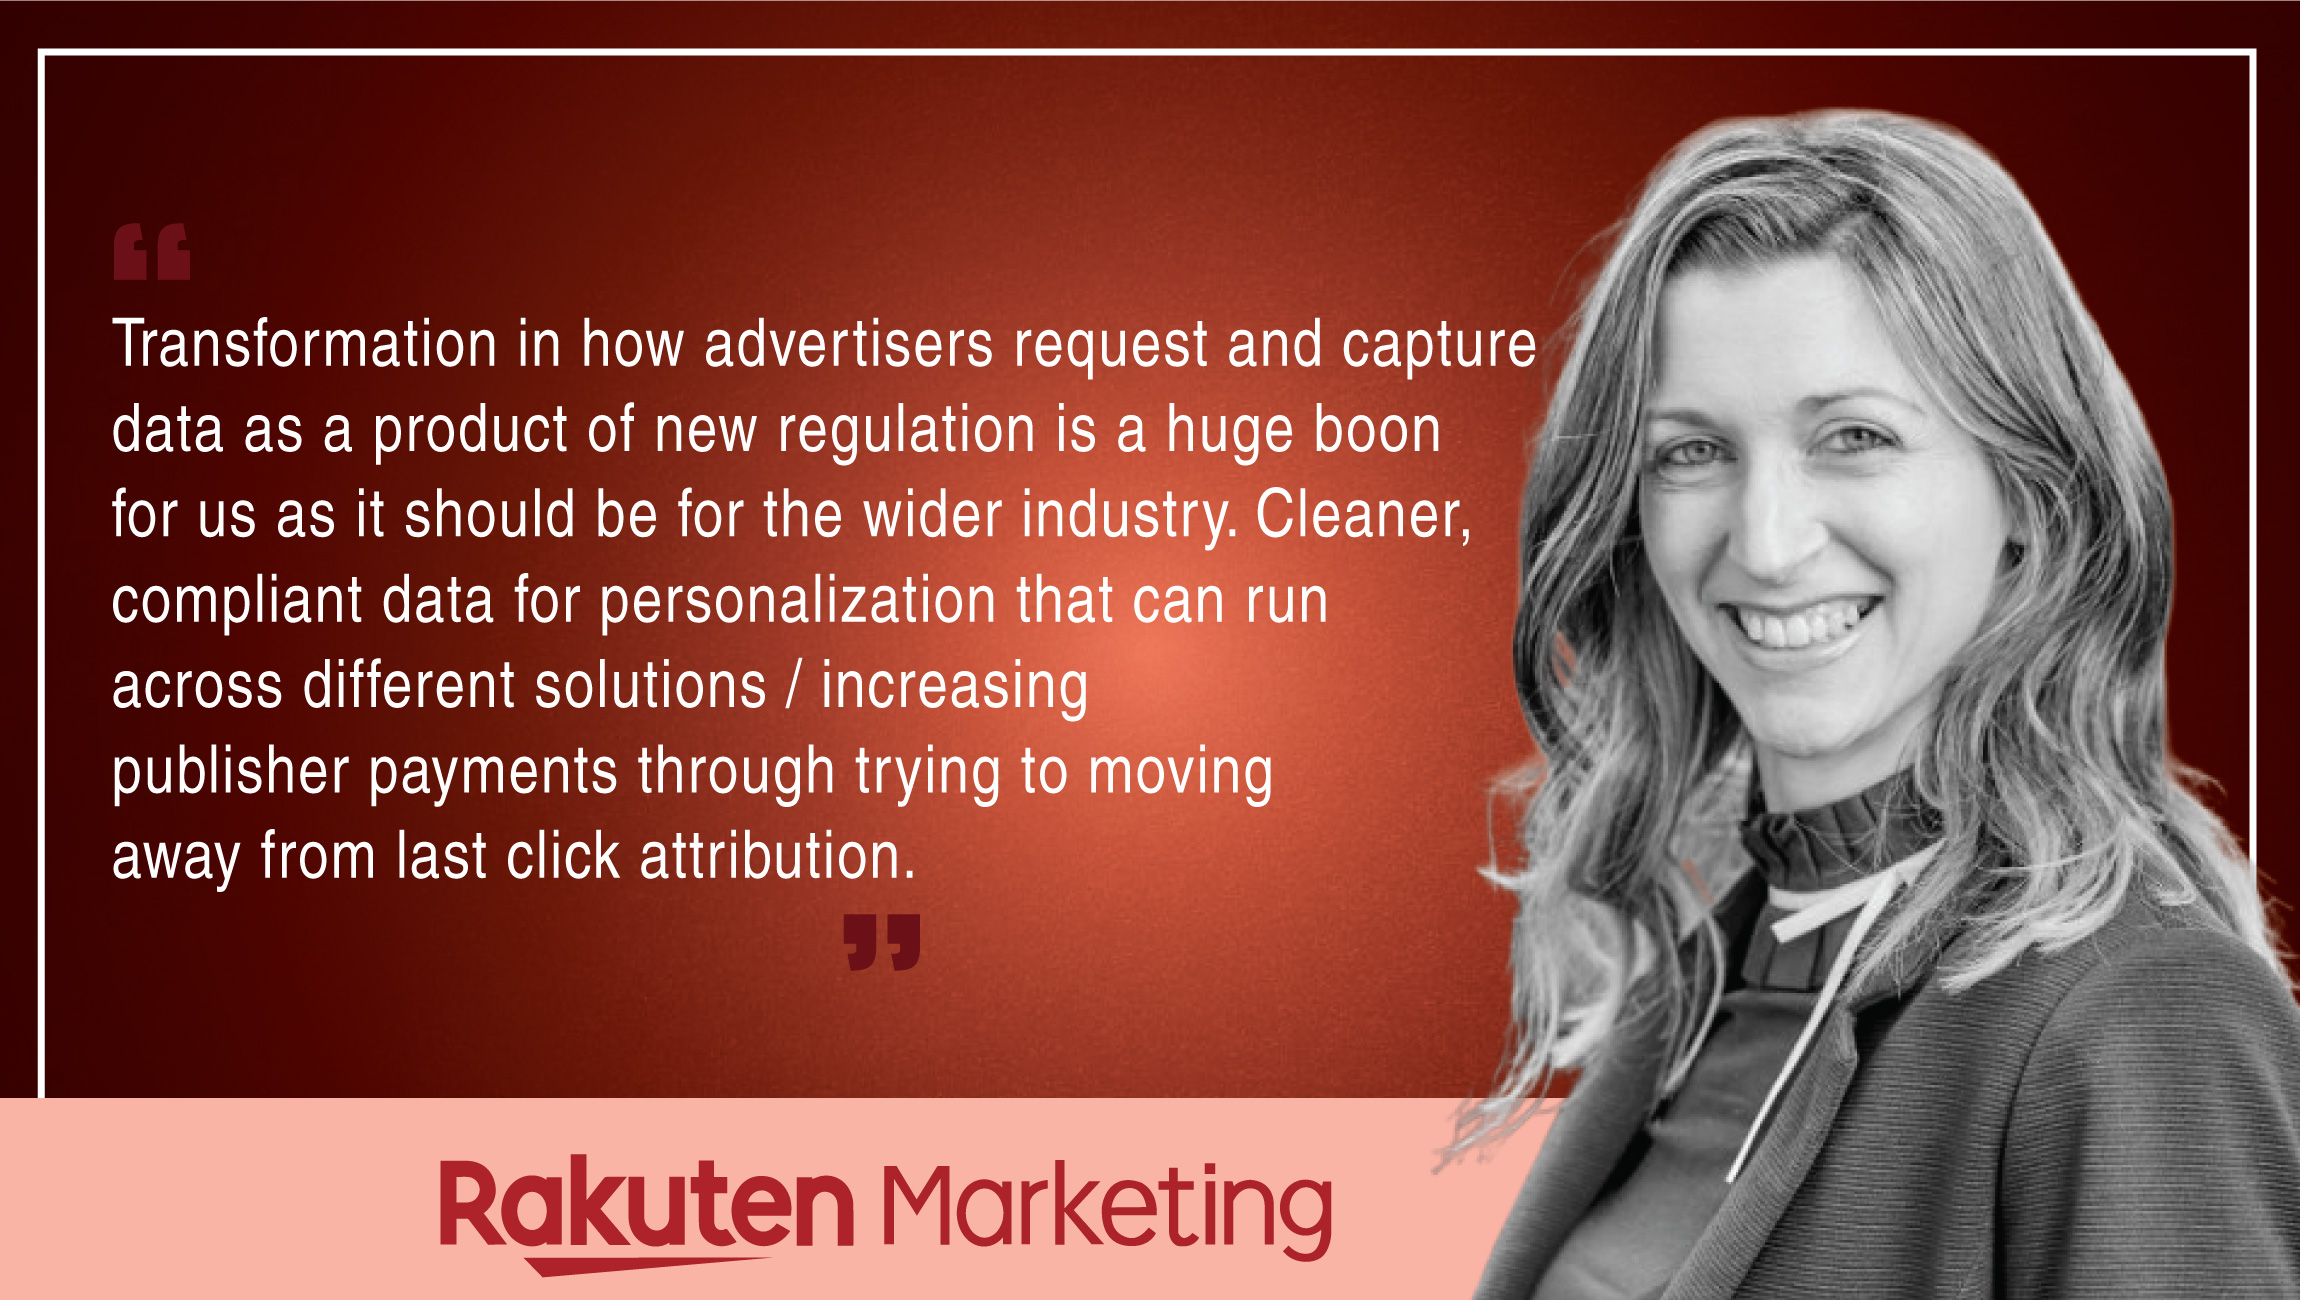 TechBytes with Abi Jacks, Senior Director, Marketing, Europe at Rakuten Marketing